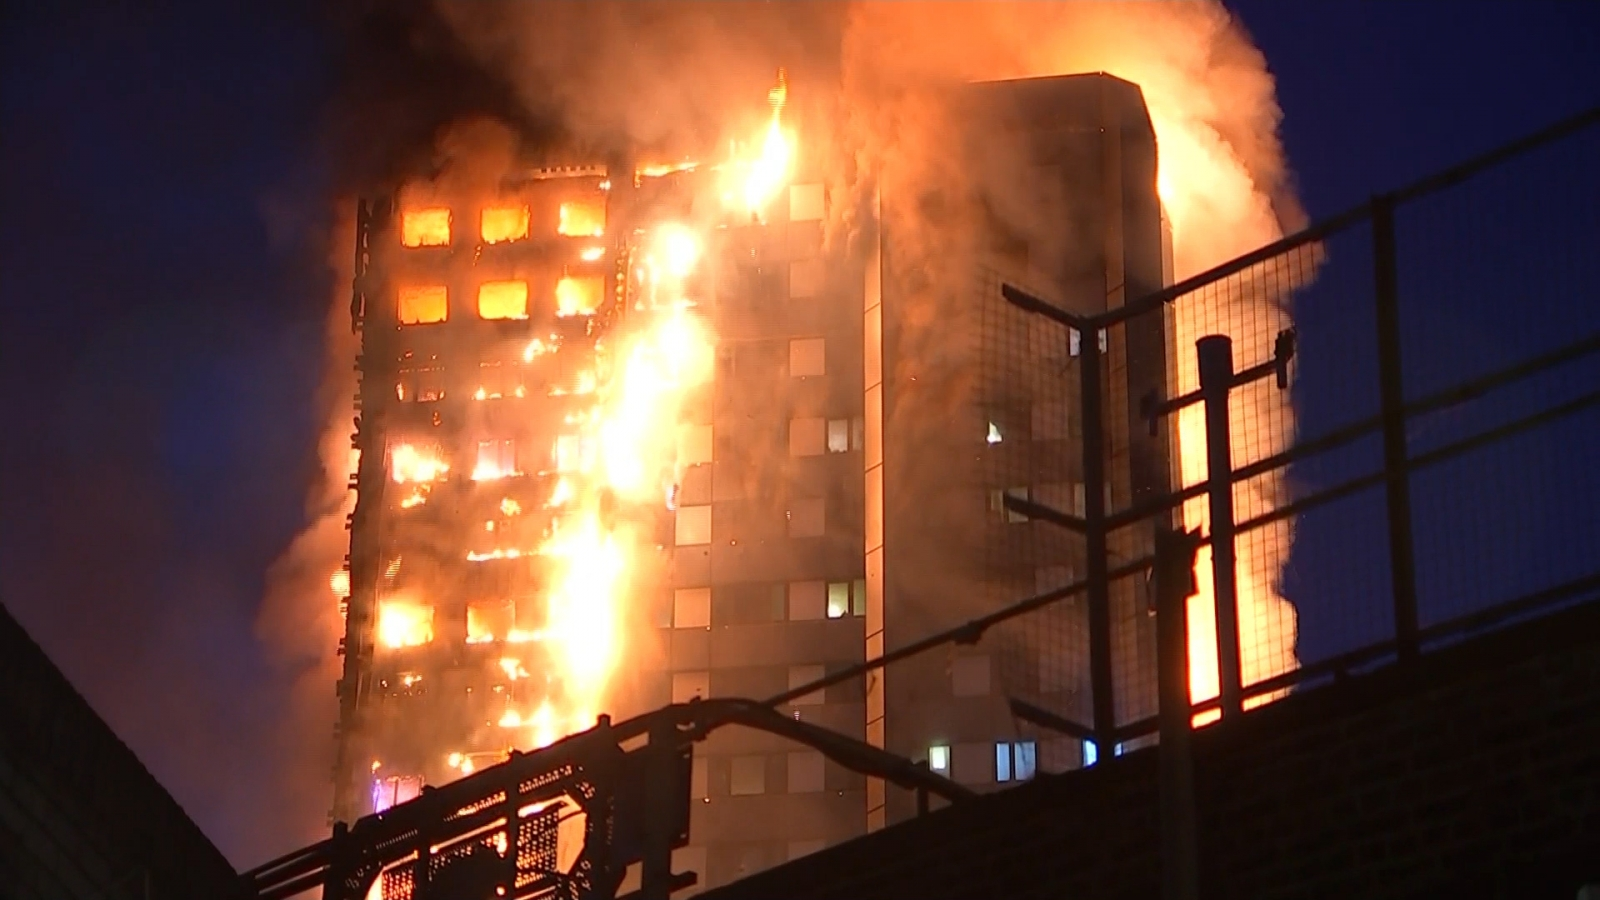 eyewitnesses-describe-chaotic-scenes-at-west-london-fire